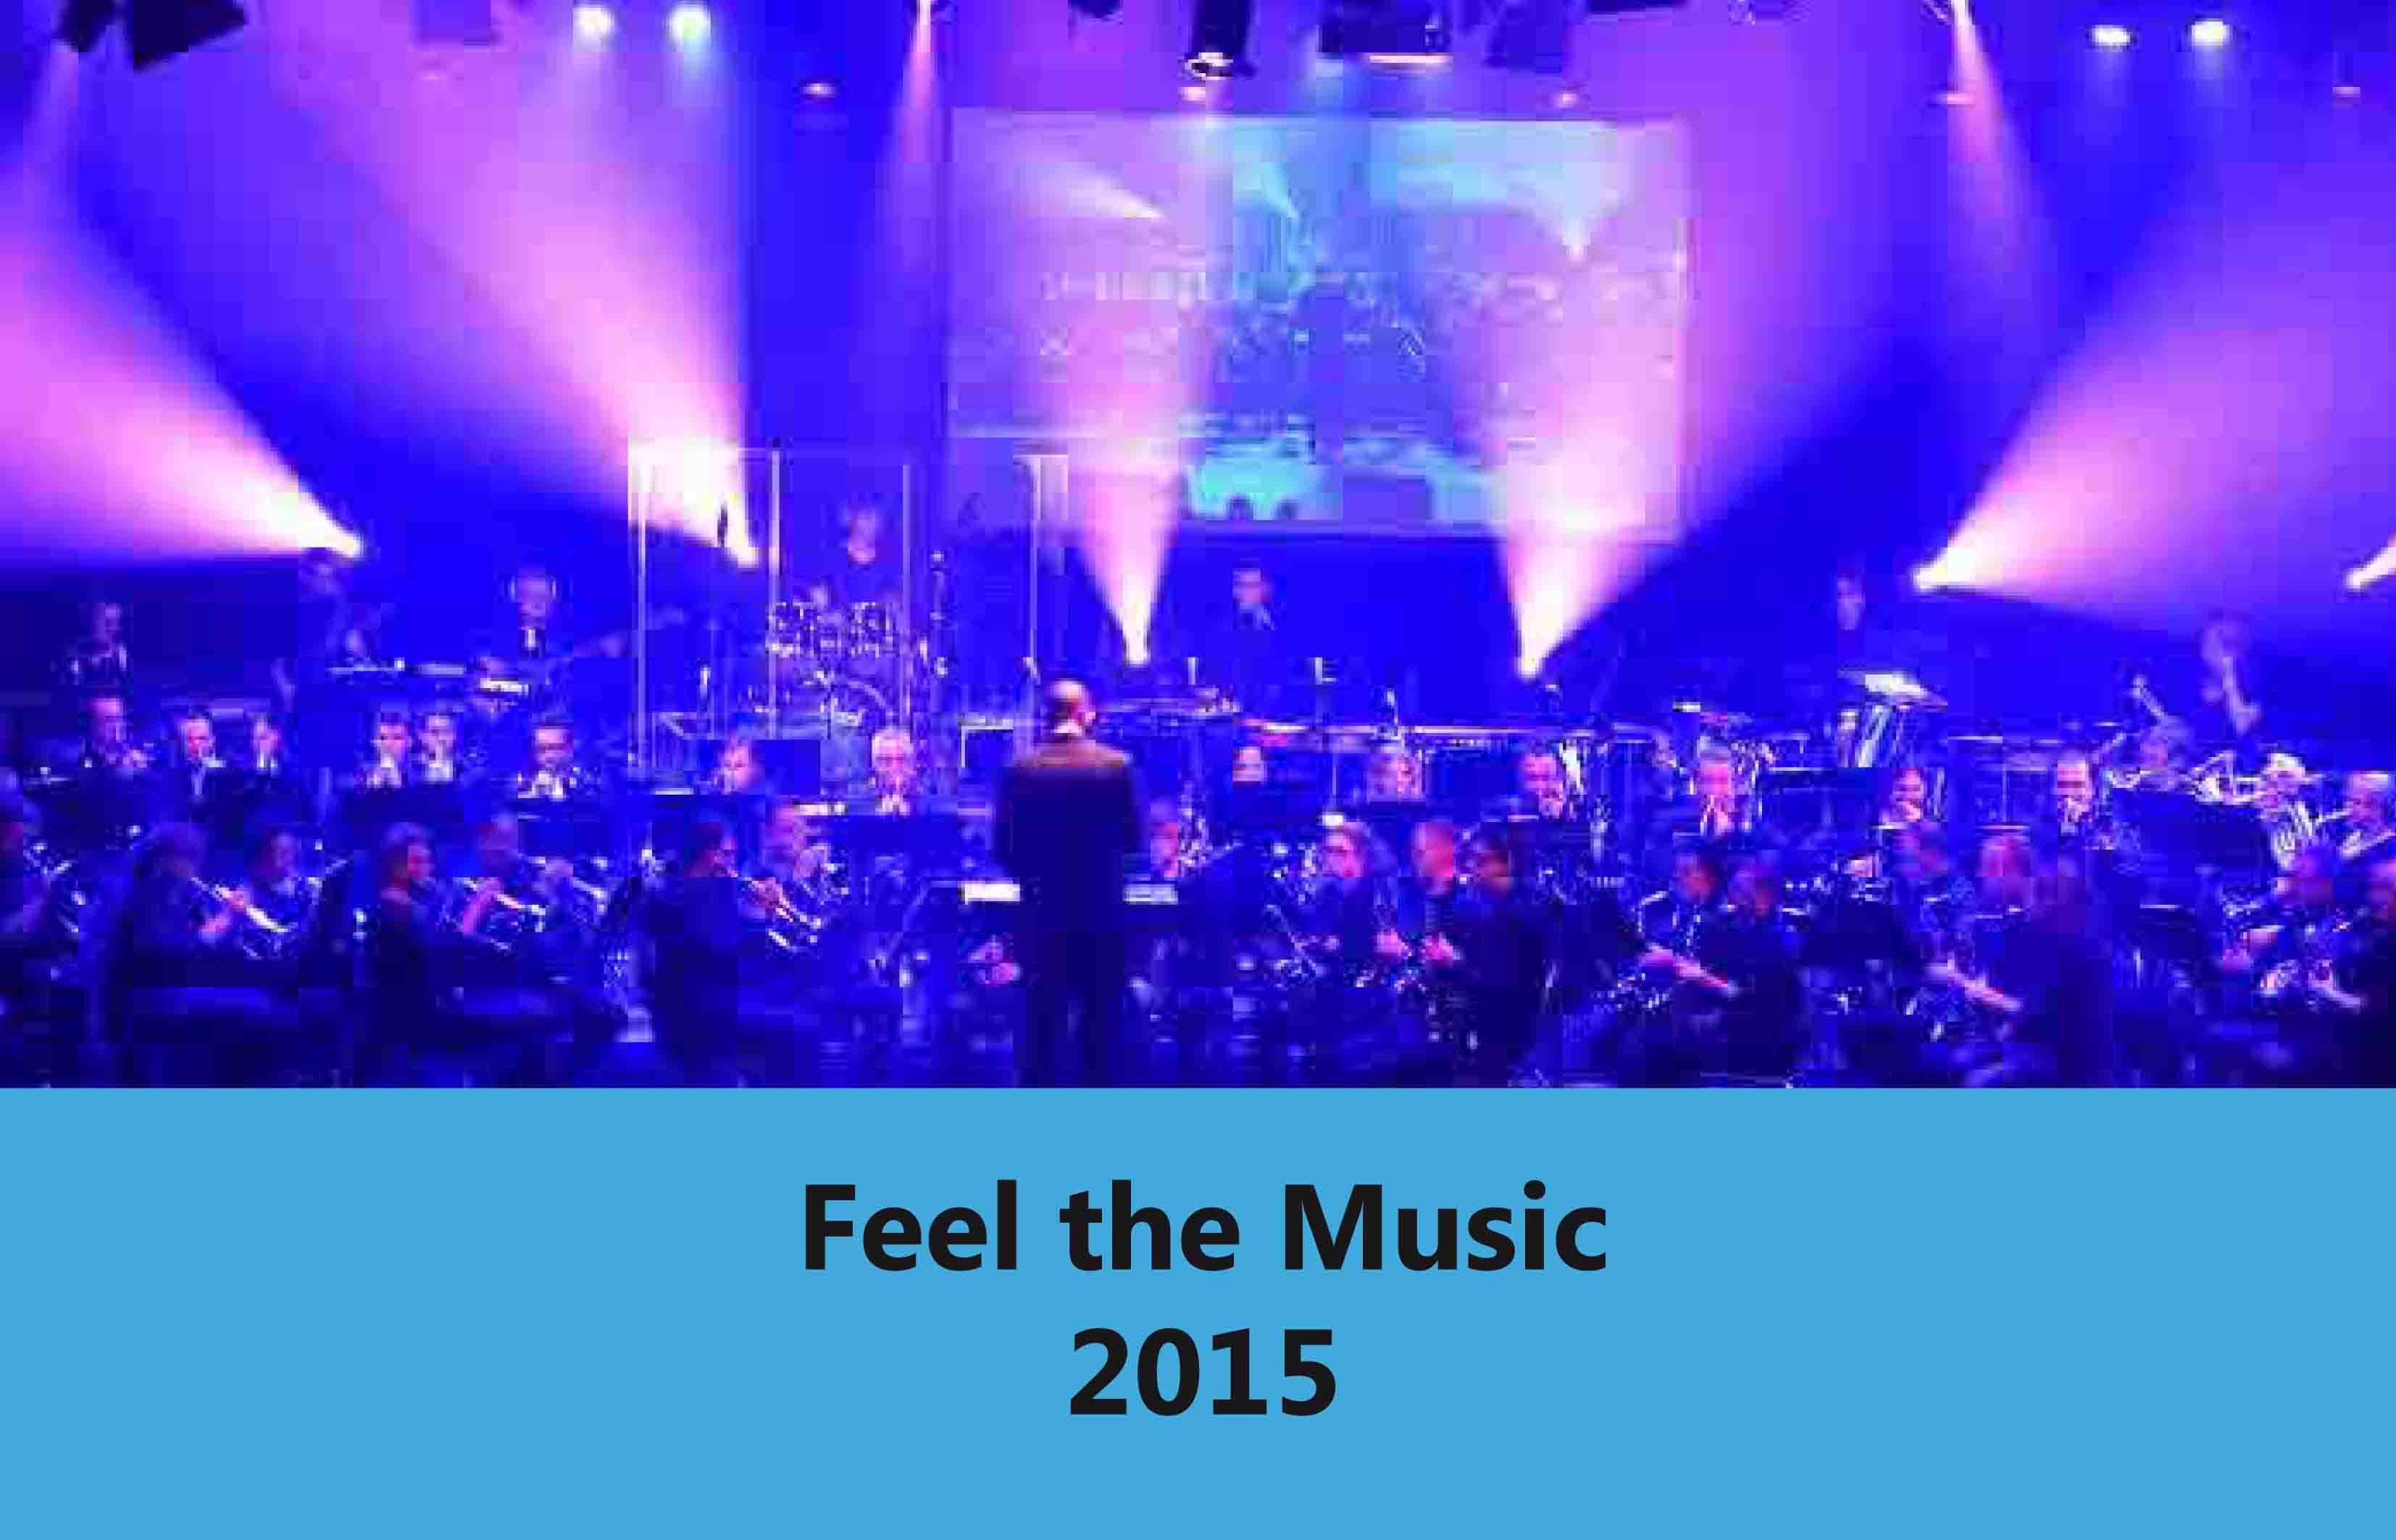 Feel the Music 2015